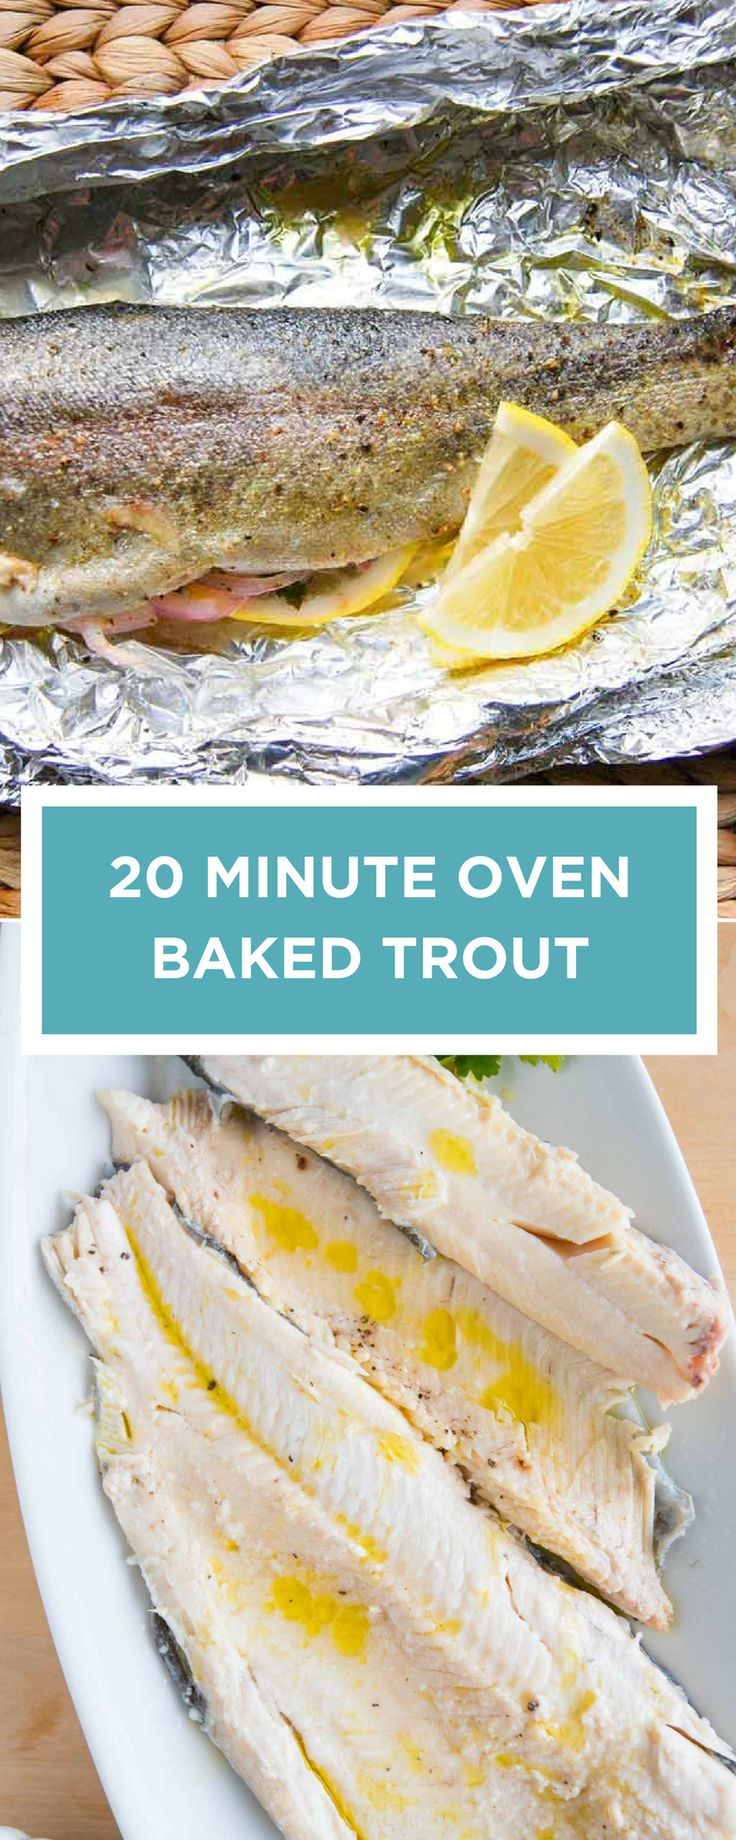 Easy trout recipes baked